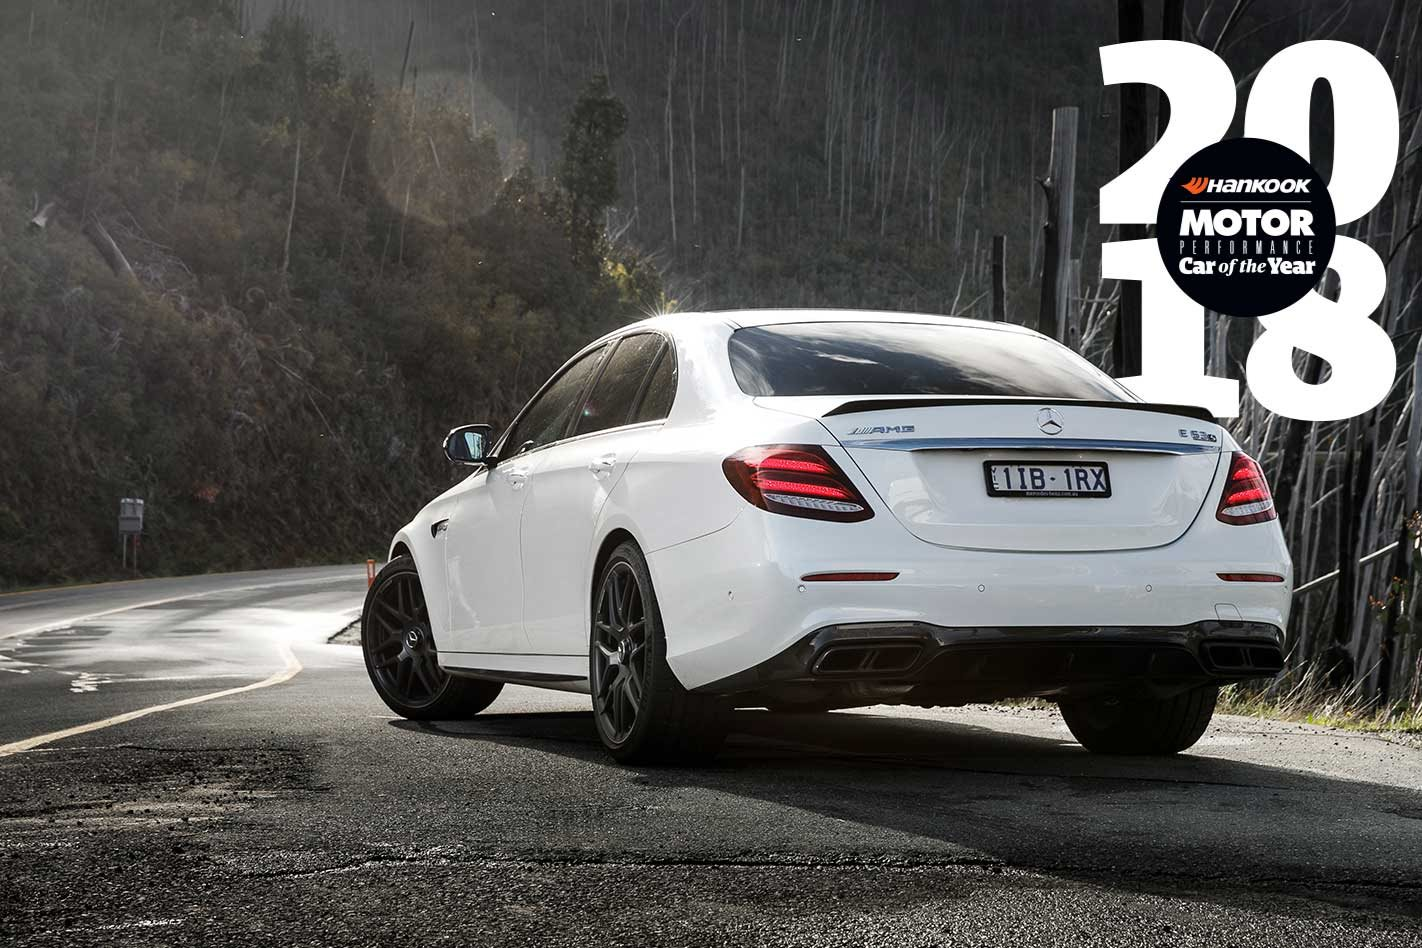 mercedes amg e63 s performance car of the year 2018 2nd place